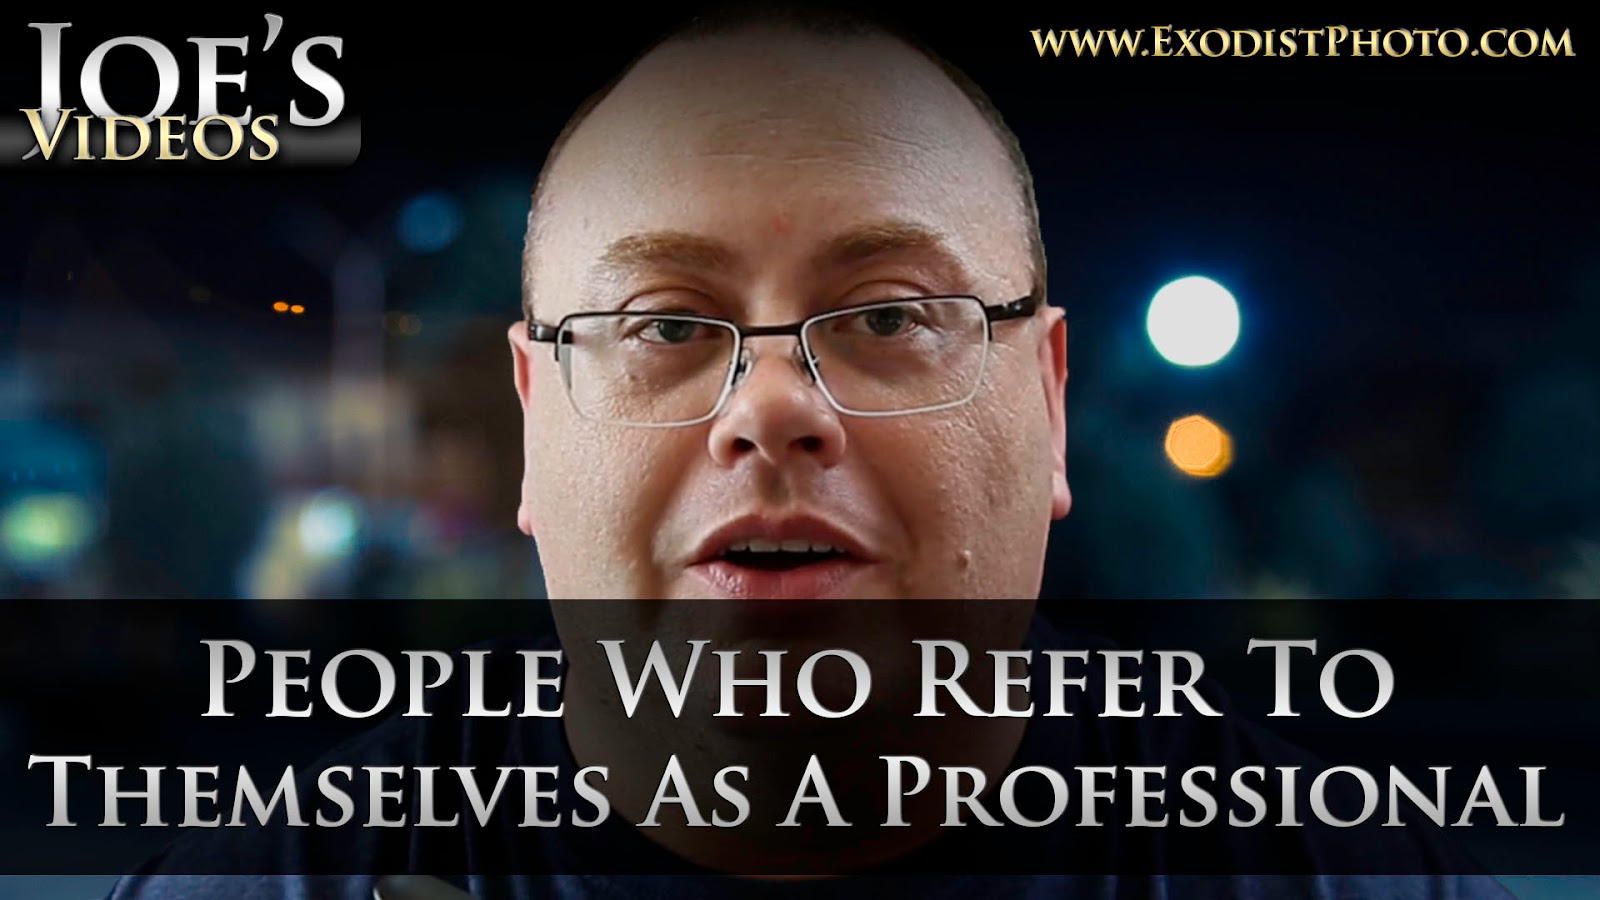 People Who Refer To Themselves As Professional Photographer Or Retoucher | Joe's Videos